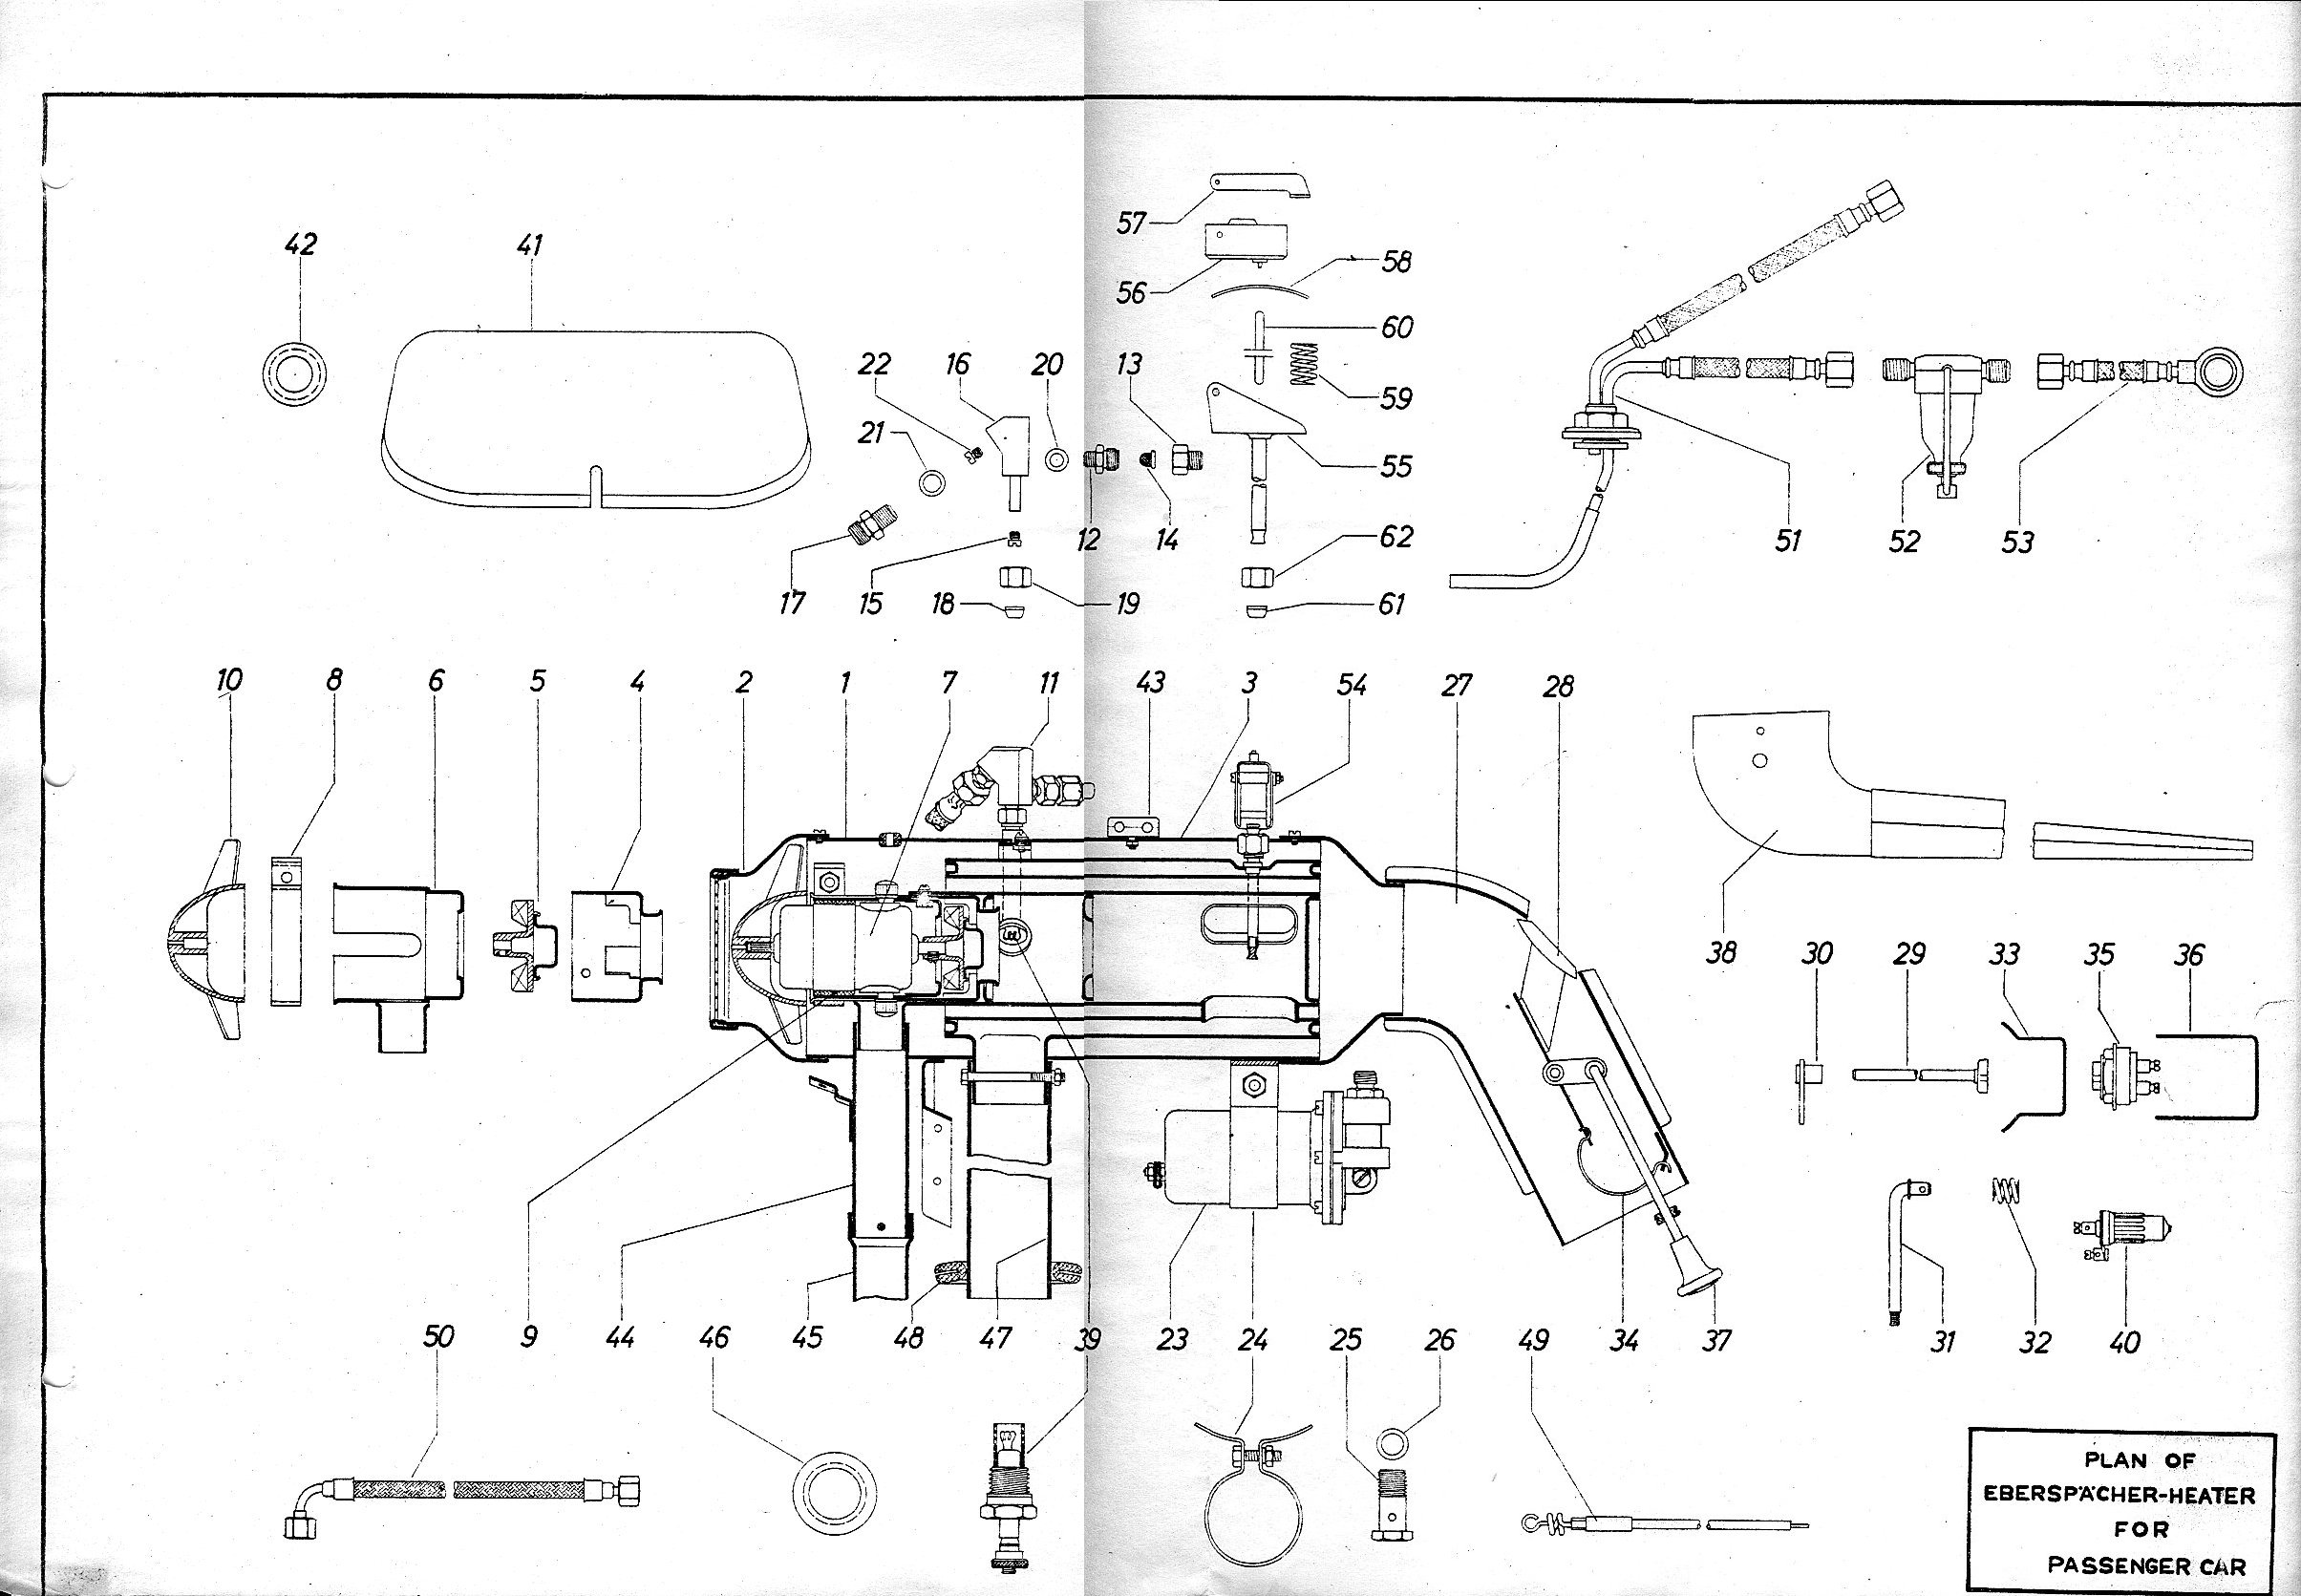 1966 Honda S90 Wiring Diagram Diagrams Cl77 Parts Auto 1962 90 1965